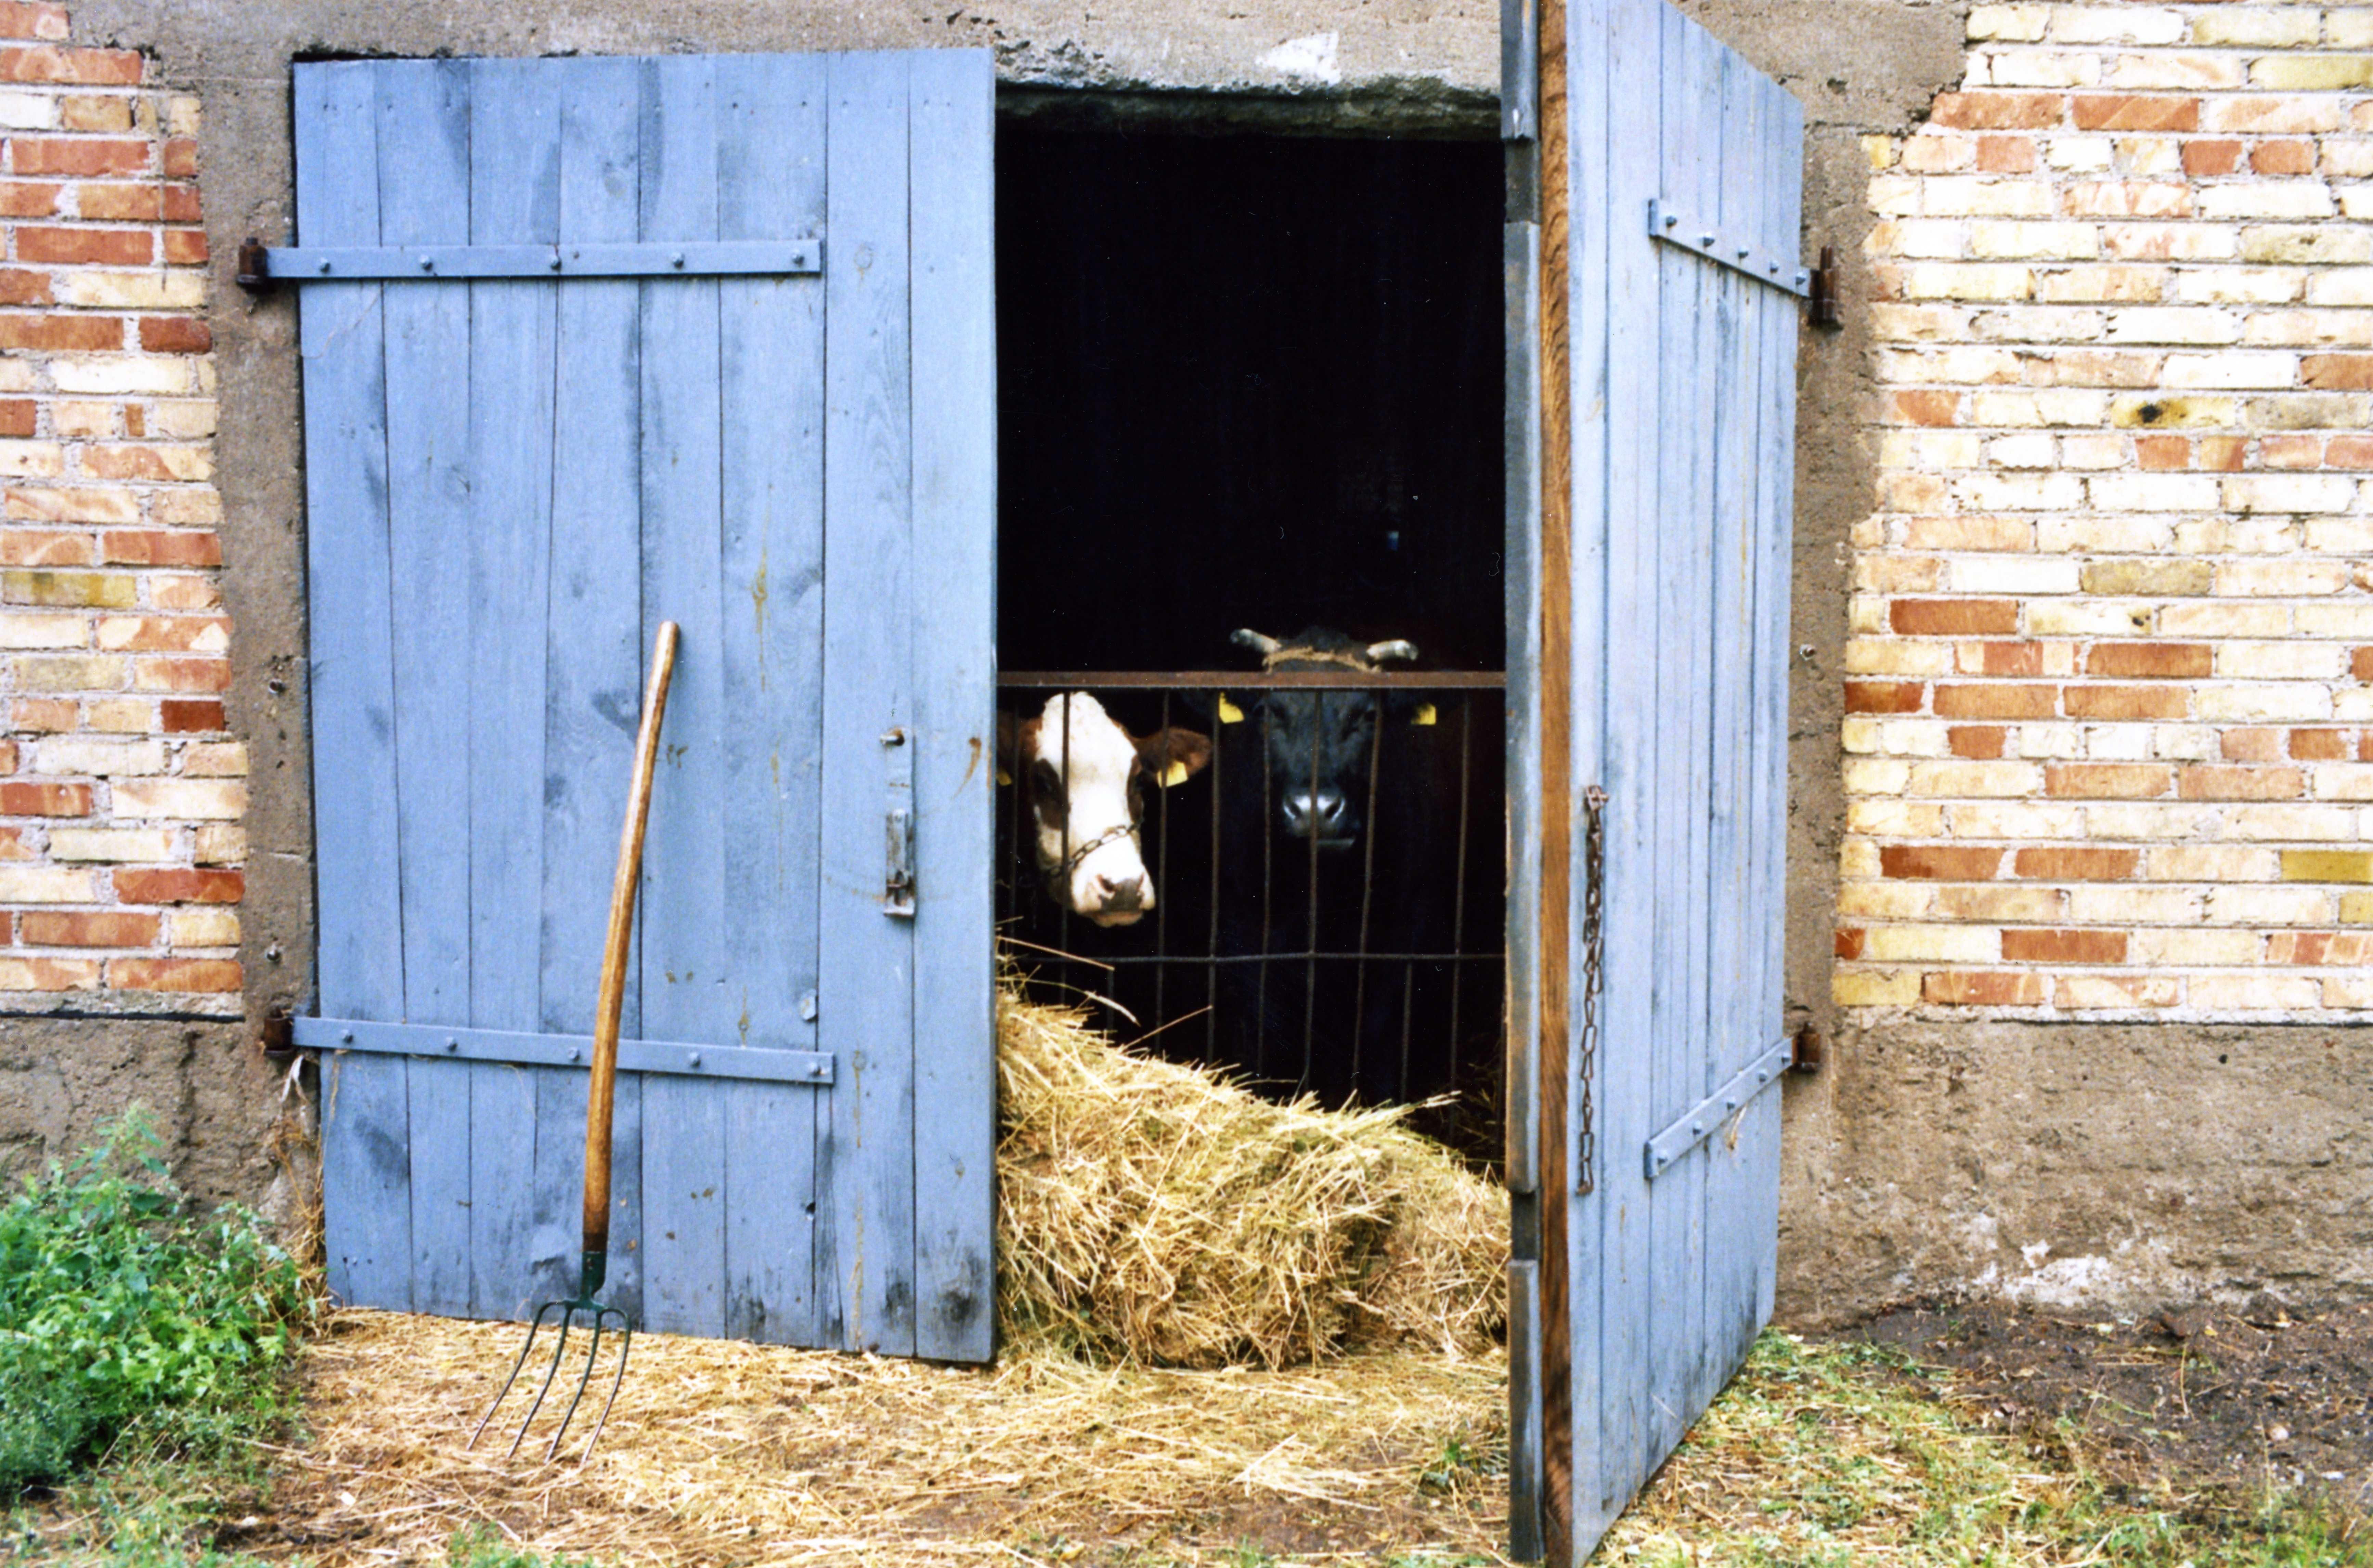 Cow in a manger